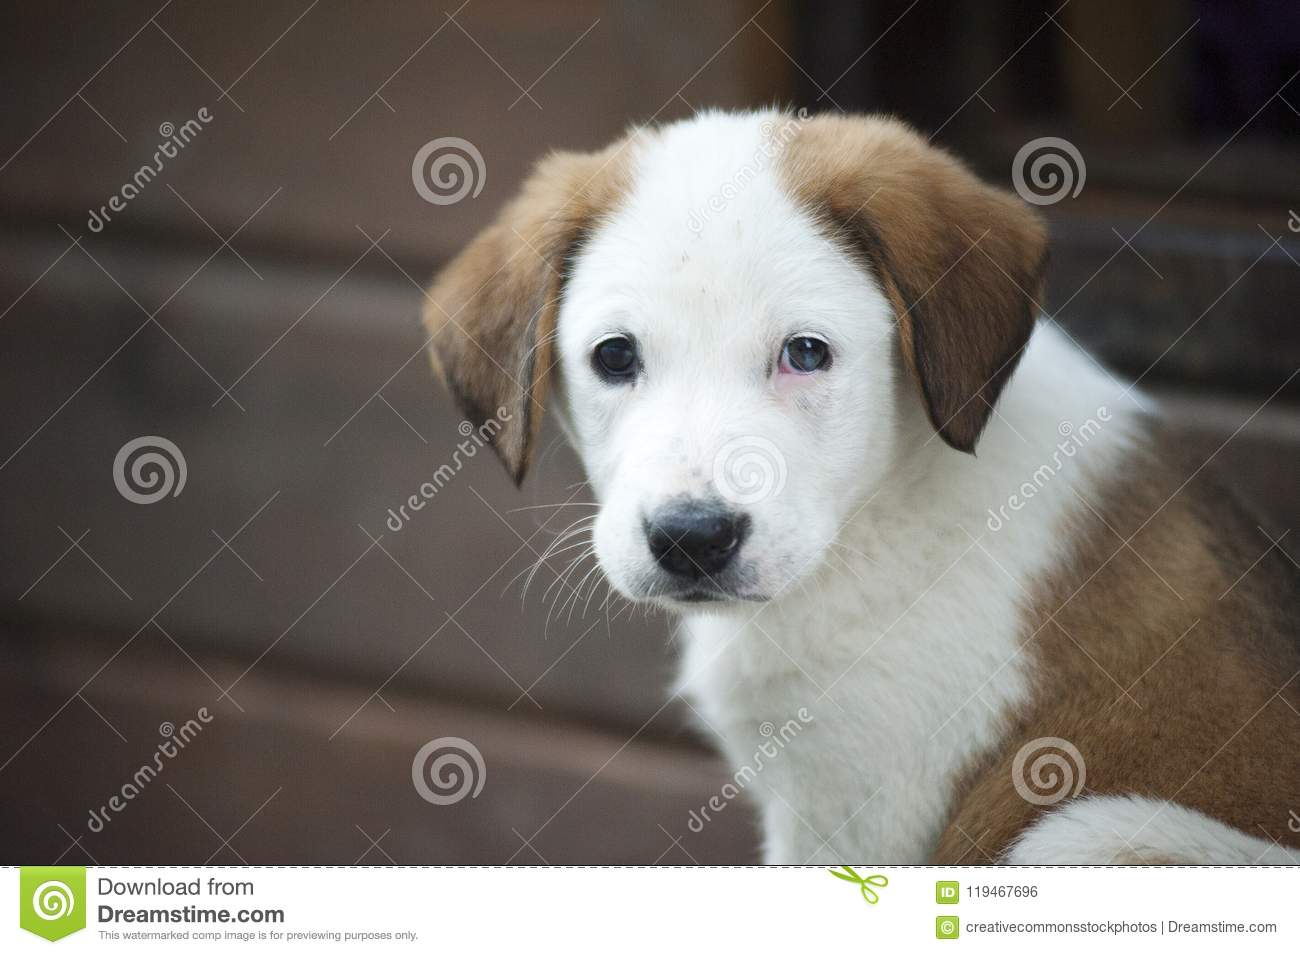 Brown And White Border Collie Mix Puppy Picture Image 119467696